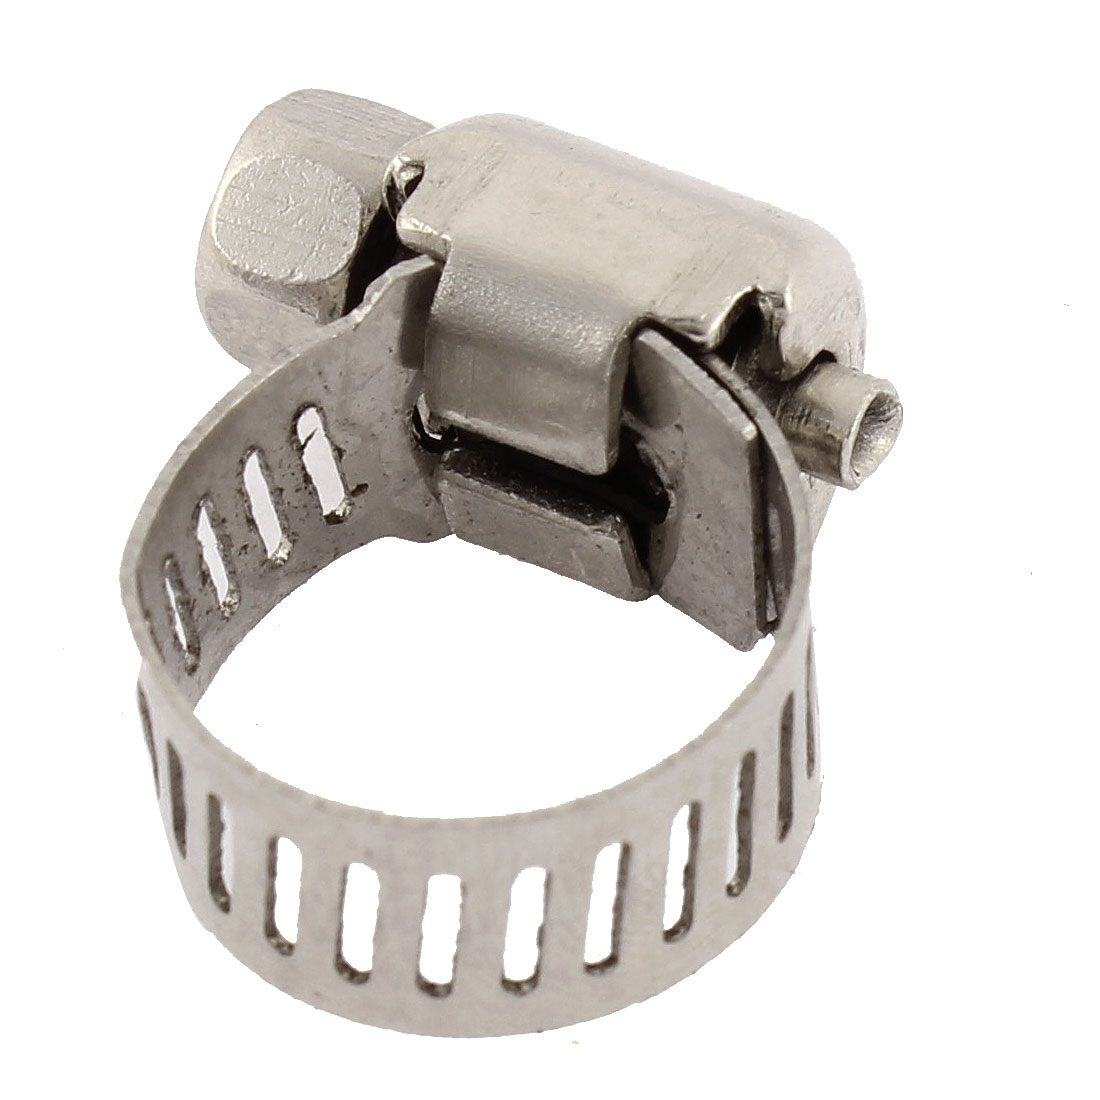 Adjustable 6-12mm Cable Tight Coolant Hose Pipe Fitting Worm Gear Clamp